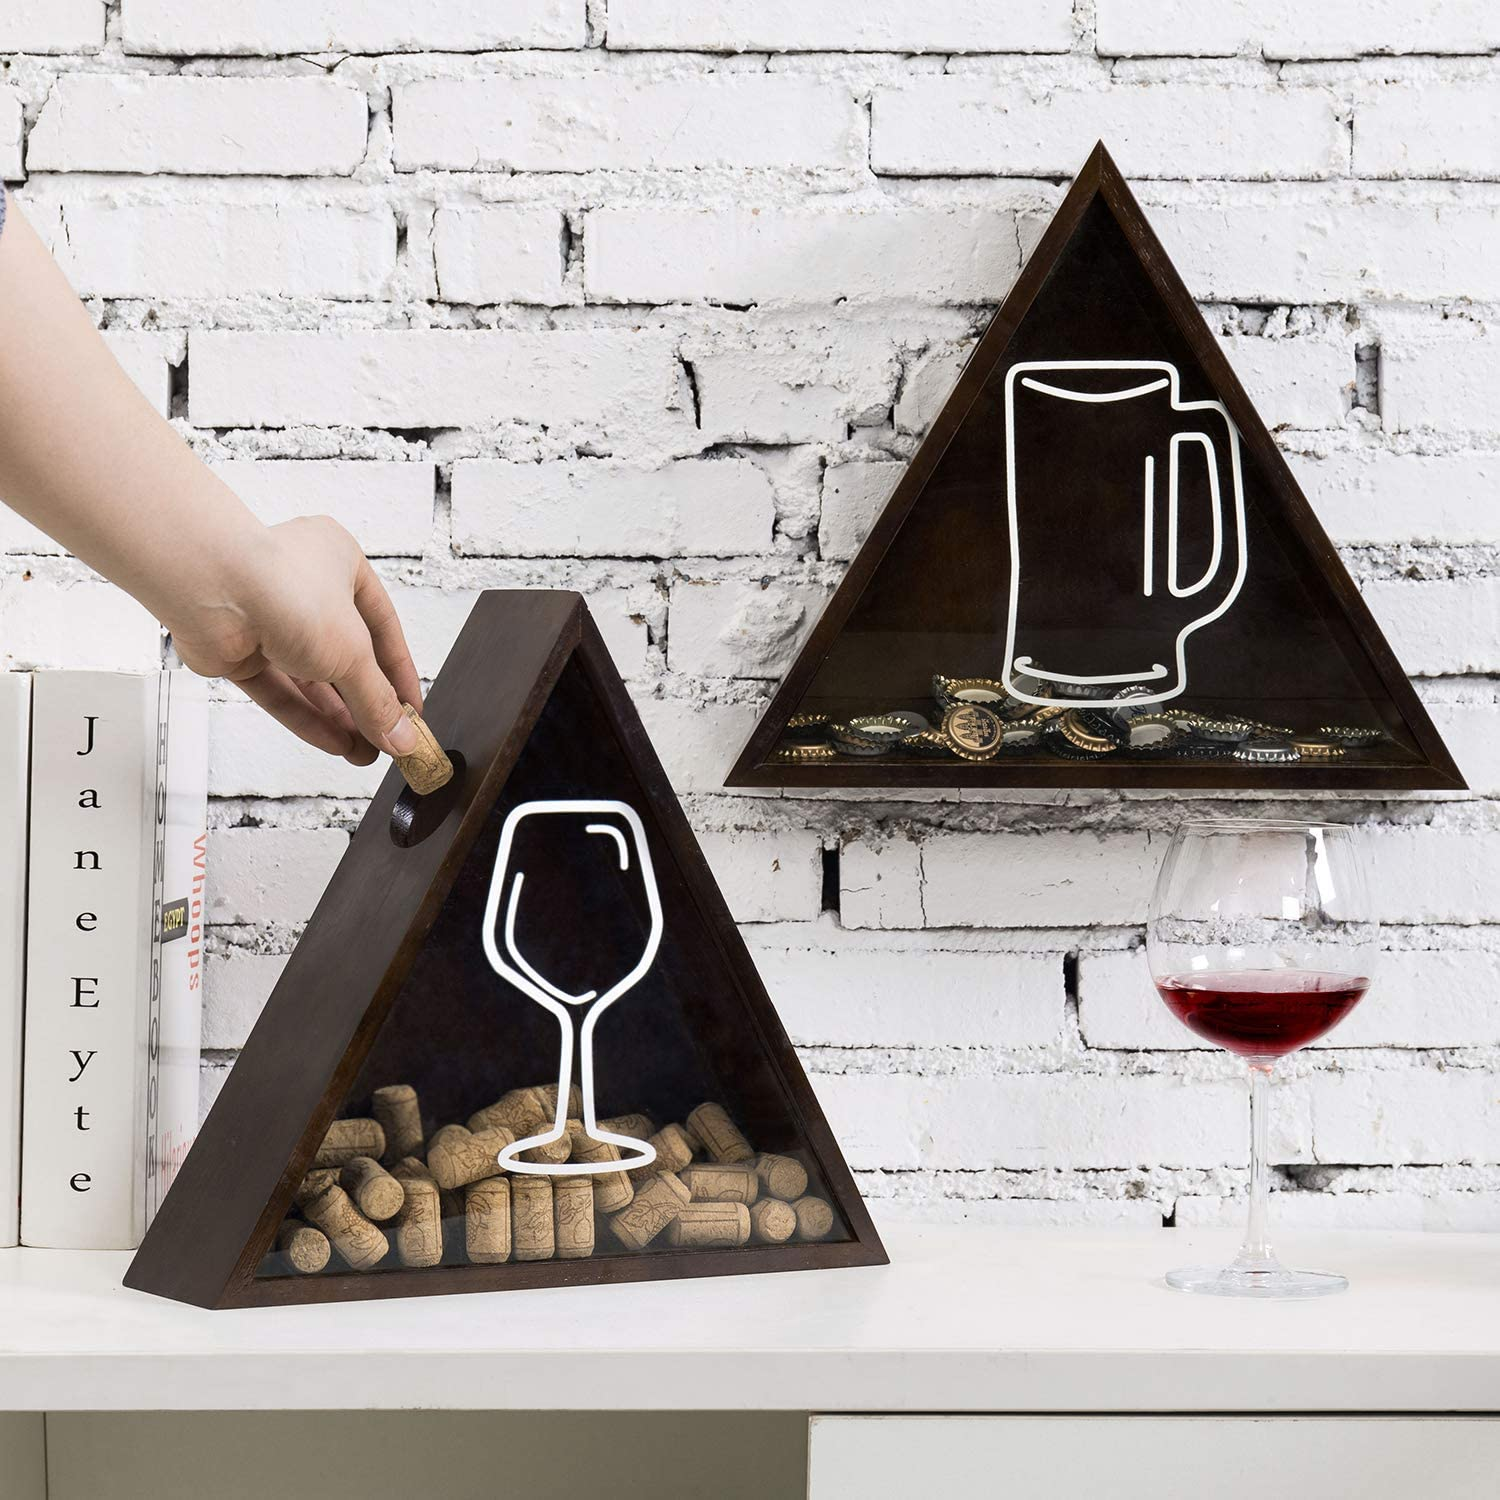 MyGift Wall Mounted/Freestanding Tabletop Triangular Dark Brown Bamboo and Acrylic Wine Cork Catcher and Beer Bottle Cap Holder Shadow Boxes, Set of 2